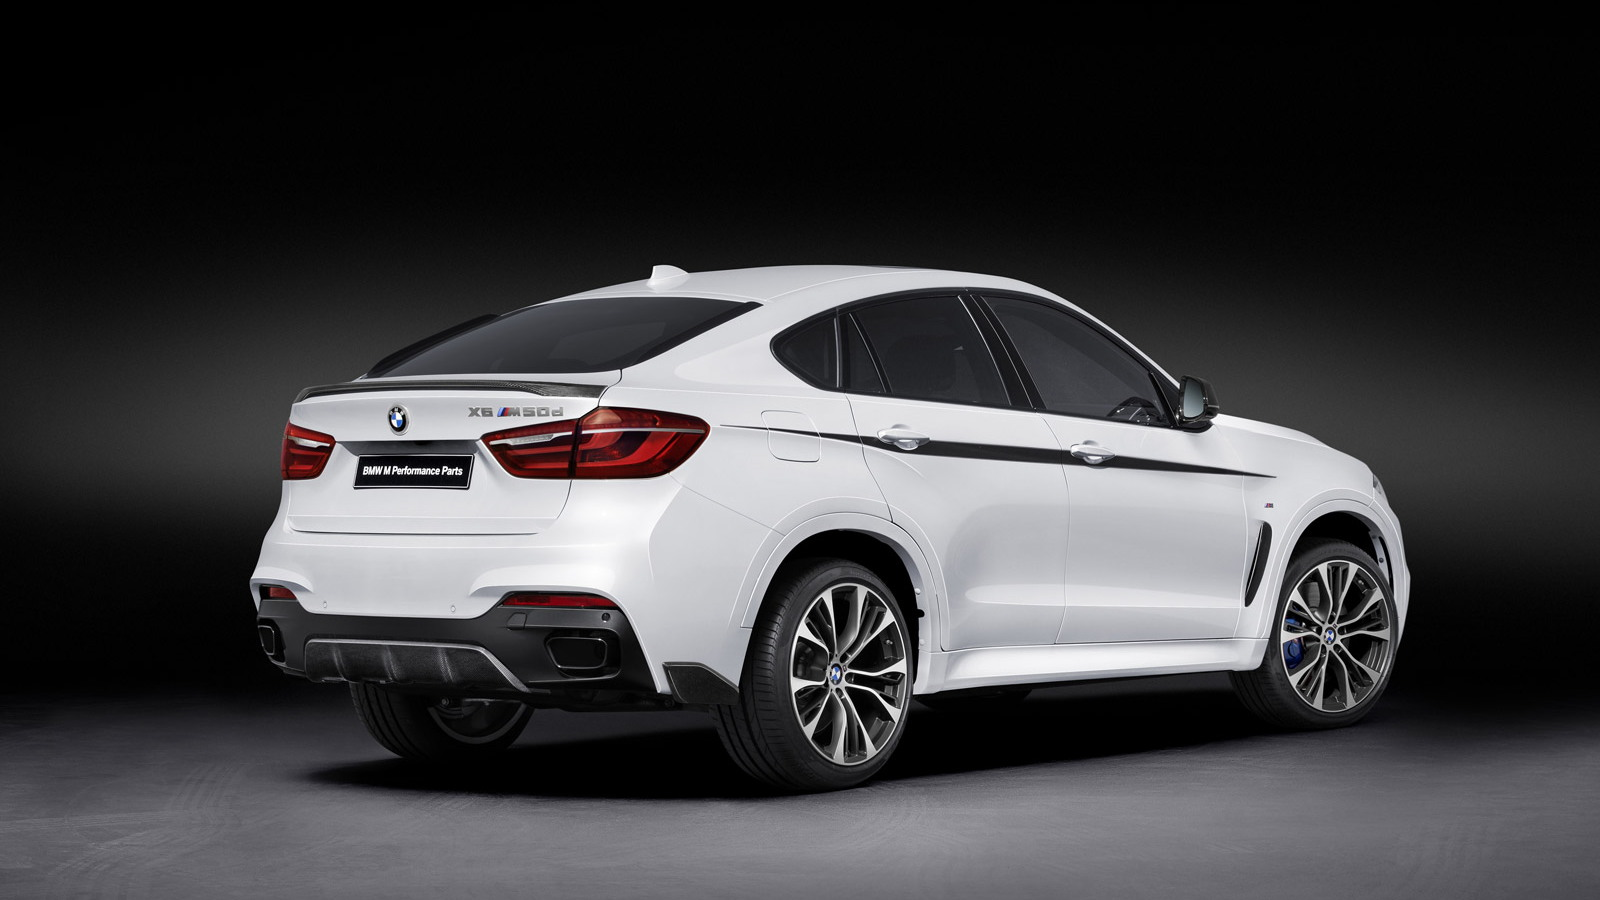 2015 BMW X6 with BMW M Performance upgrades